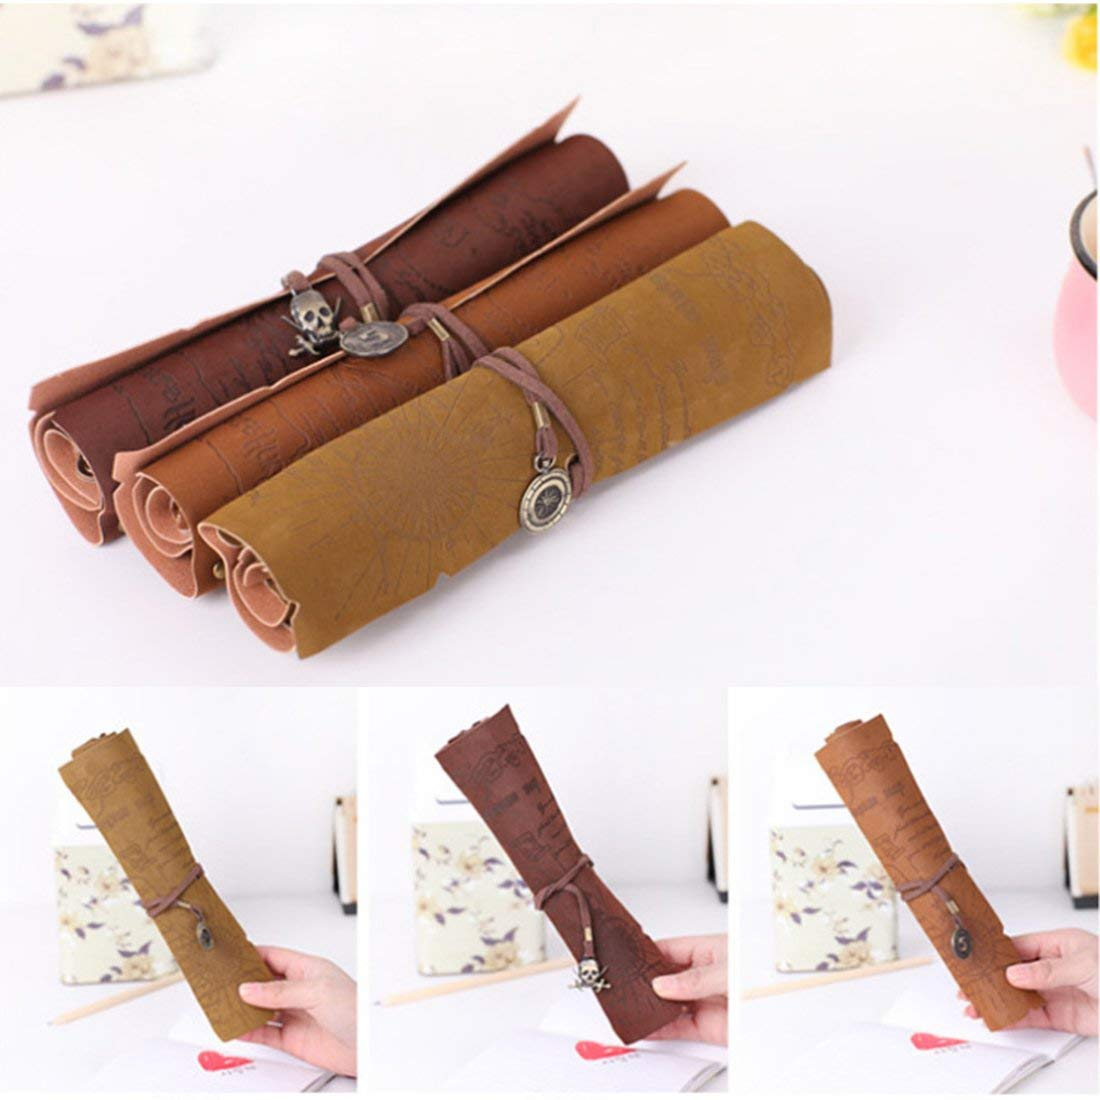 Rollable Pen Bags Pencils Bags, Zubita 3 in 1 Creative Treasure?Map Pirate Map Style Pencils Wraps Multi-purpose Pouch PU Suede?Leather Pencils Holder for Pens Pencils and Cosmetic?Brushes